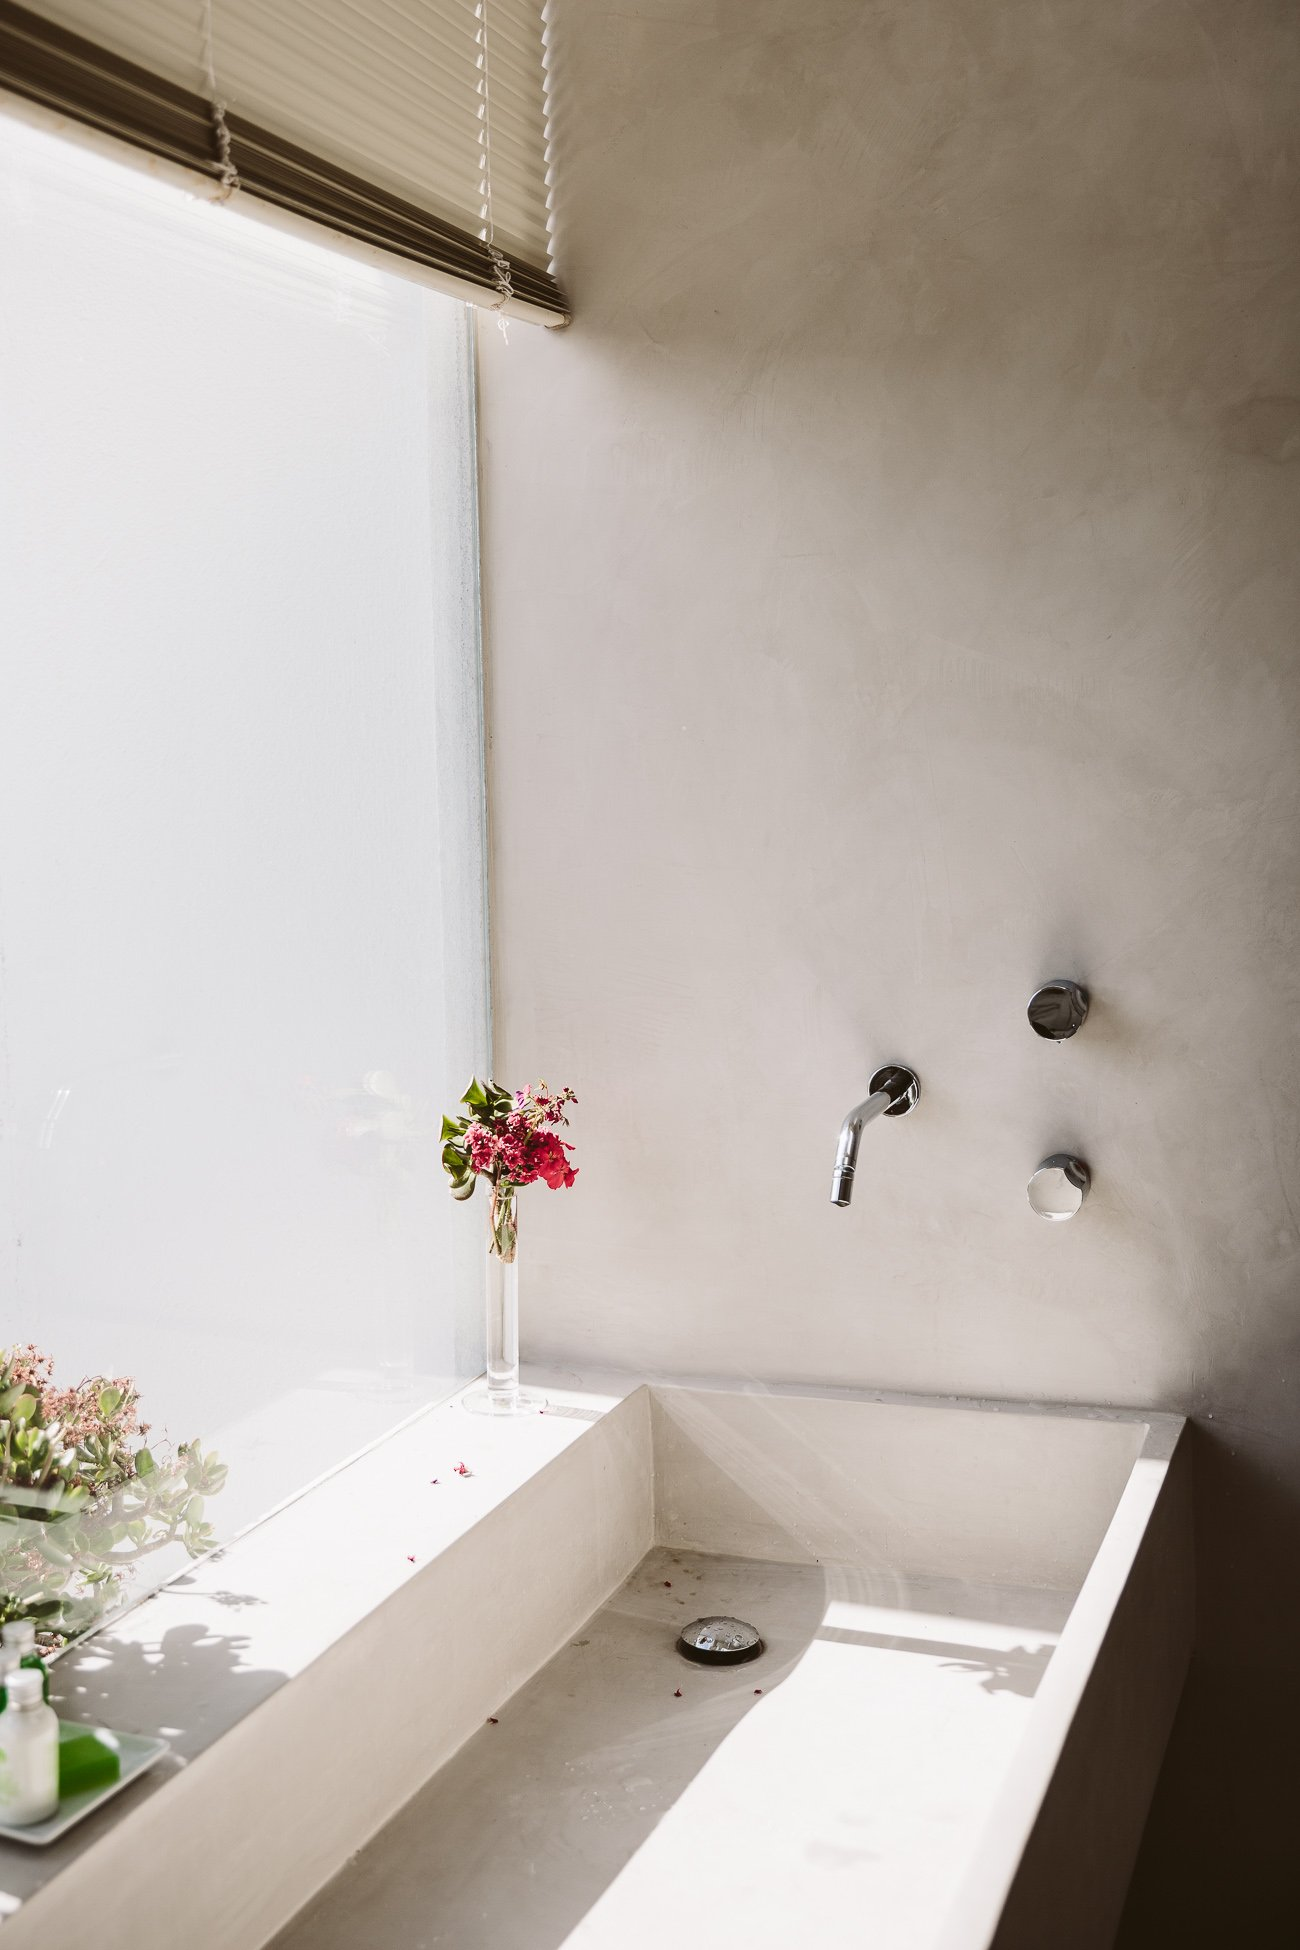 The bathroom of Suite Sur at Buenavista Country Suites Lanzarote